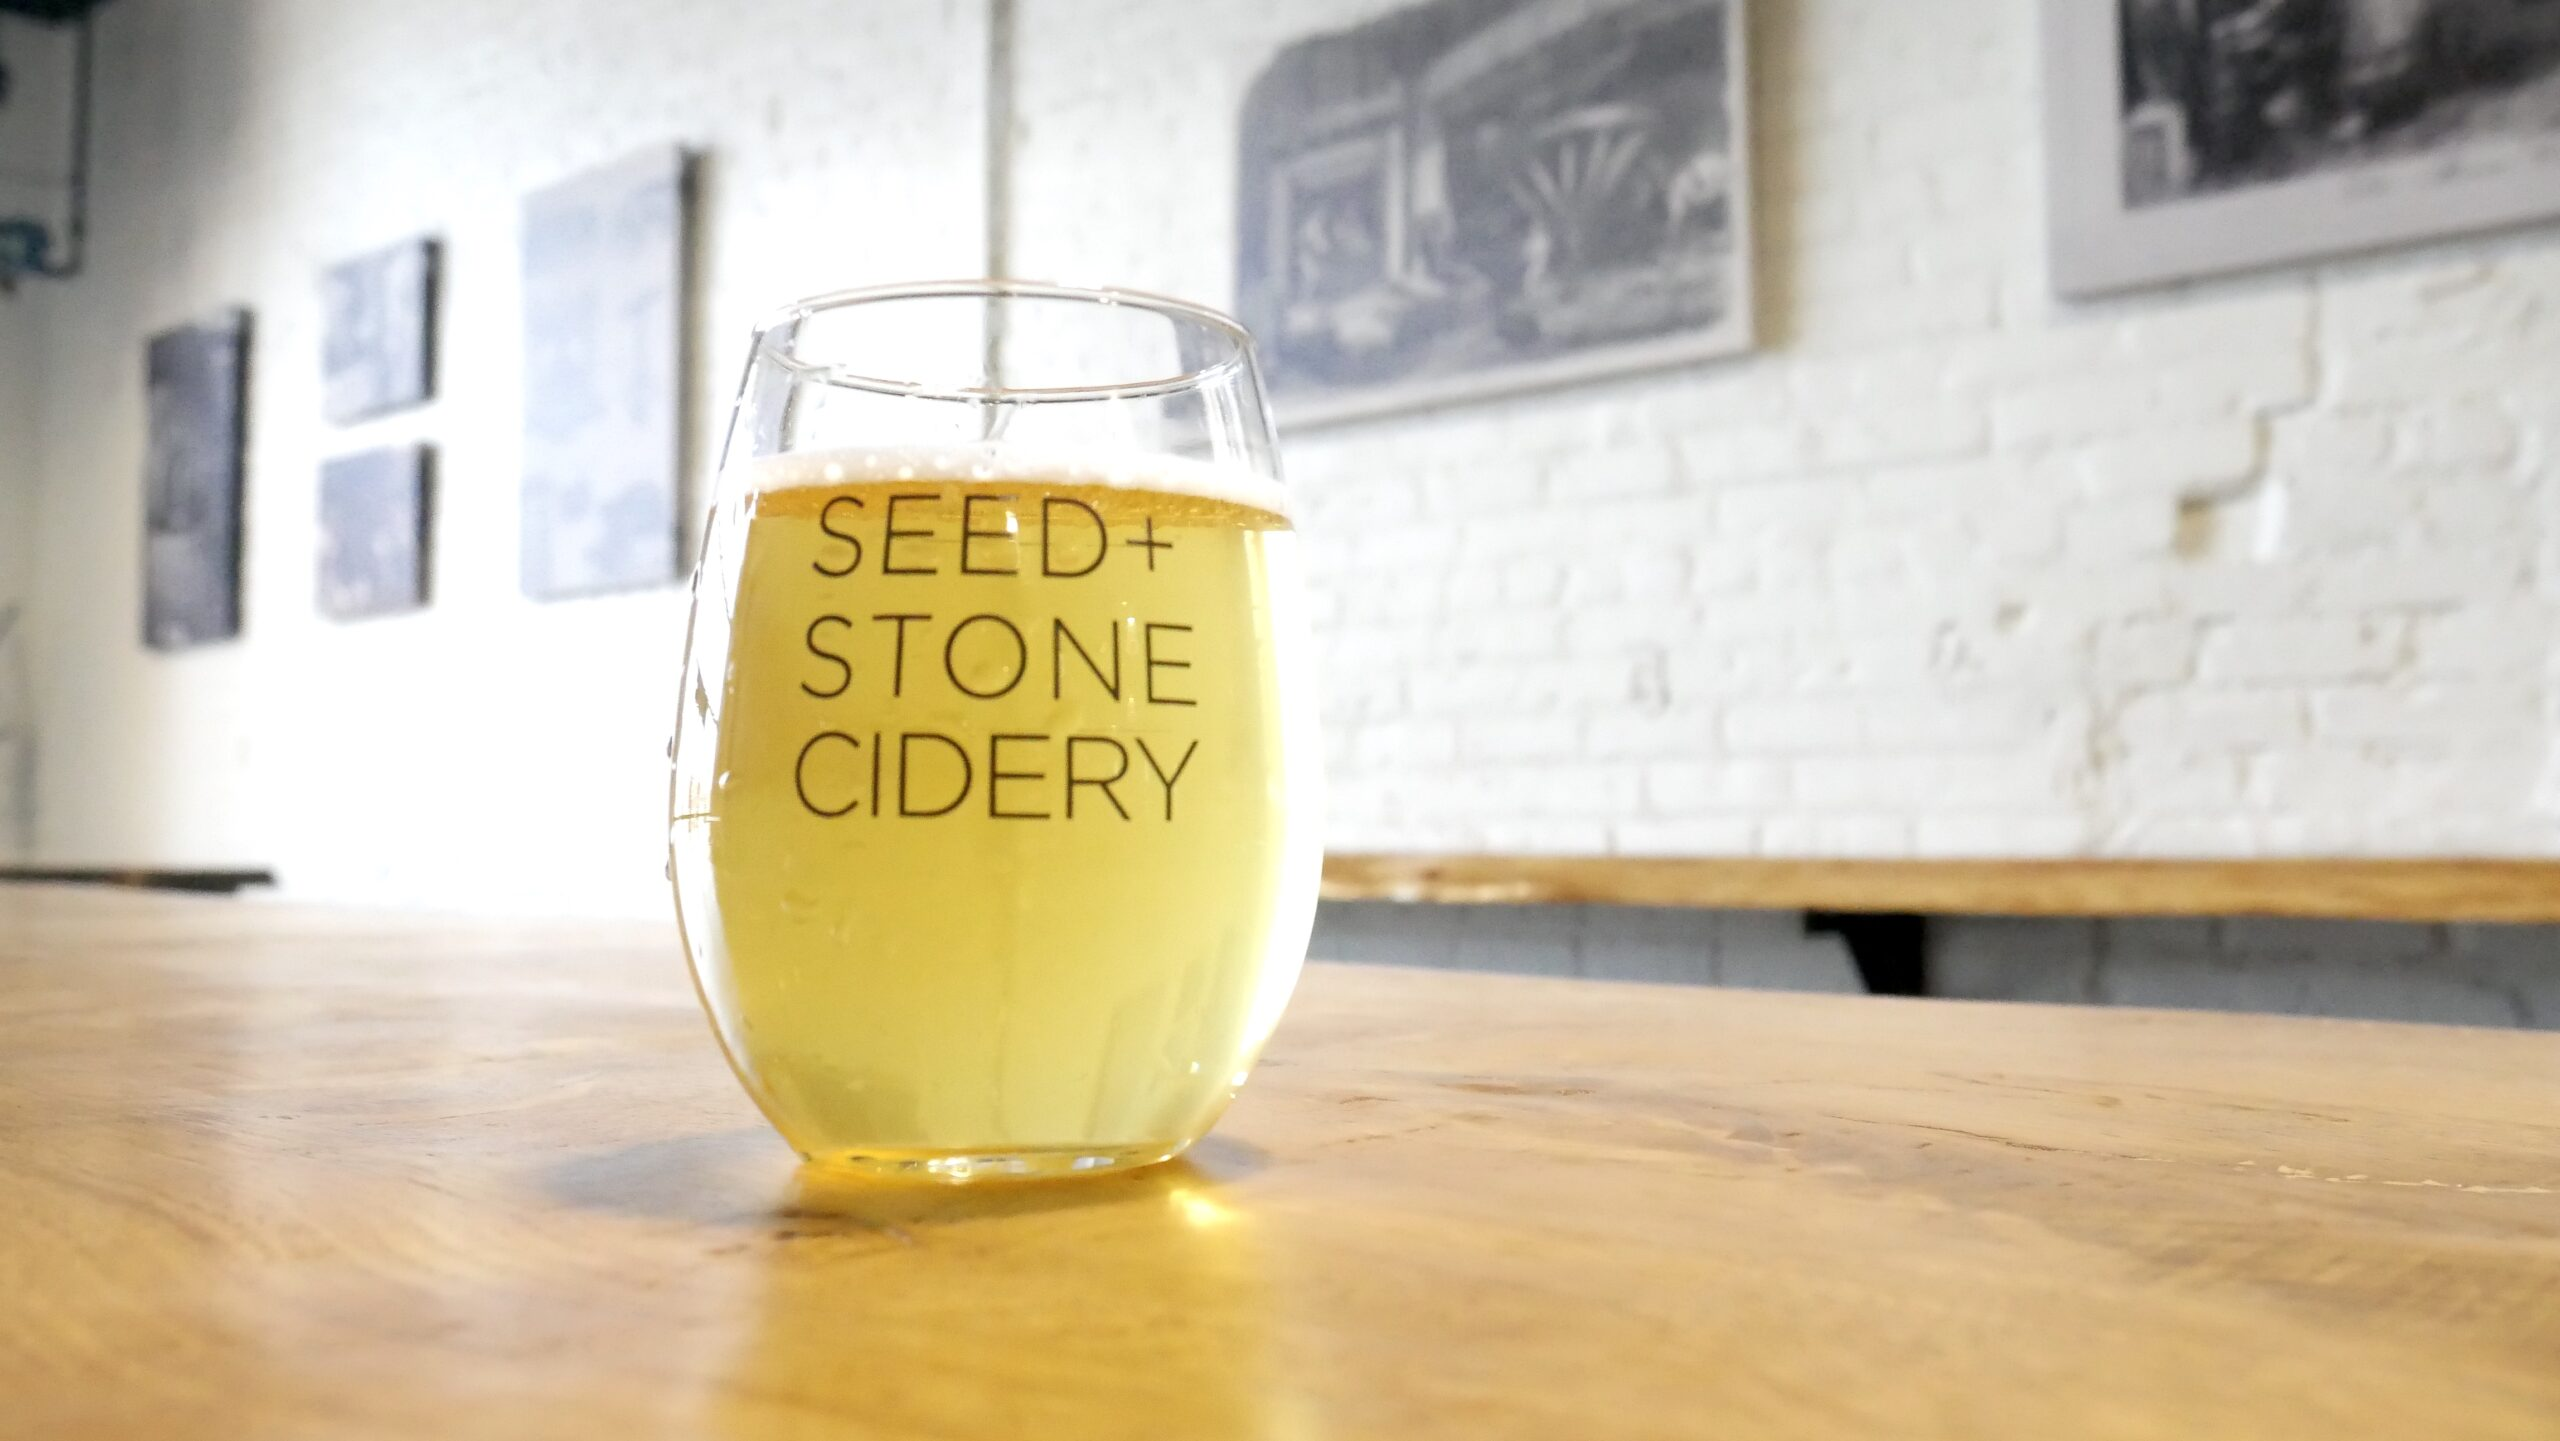 cider glass